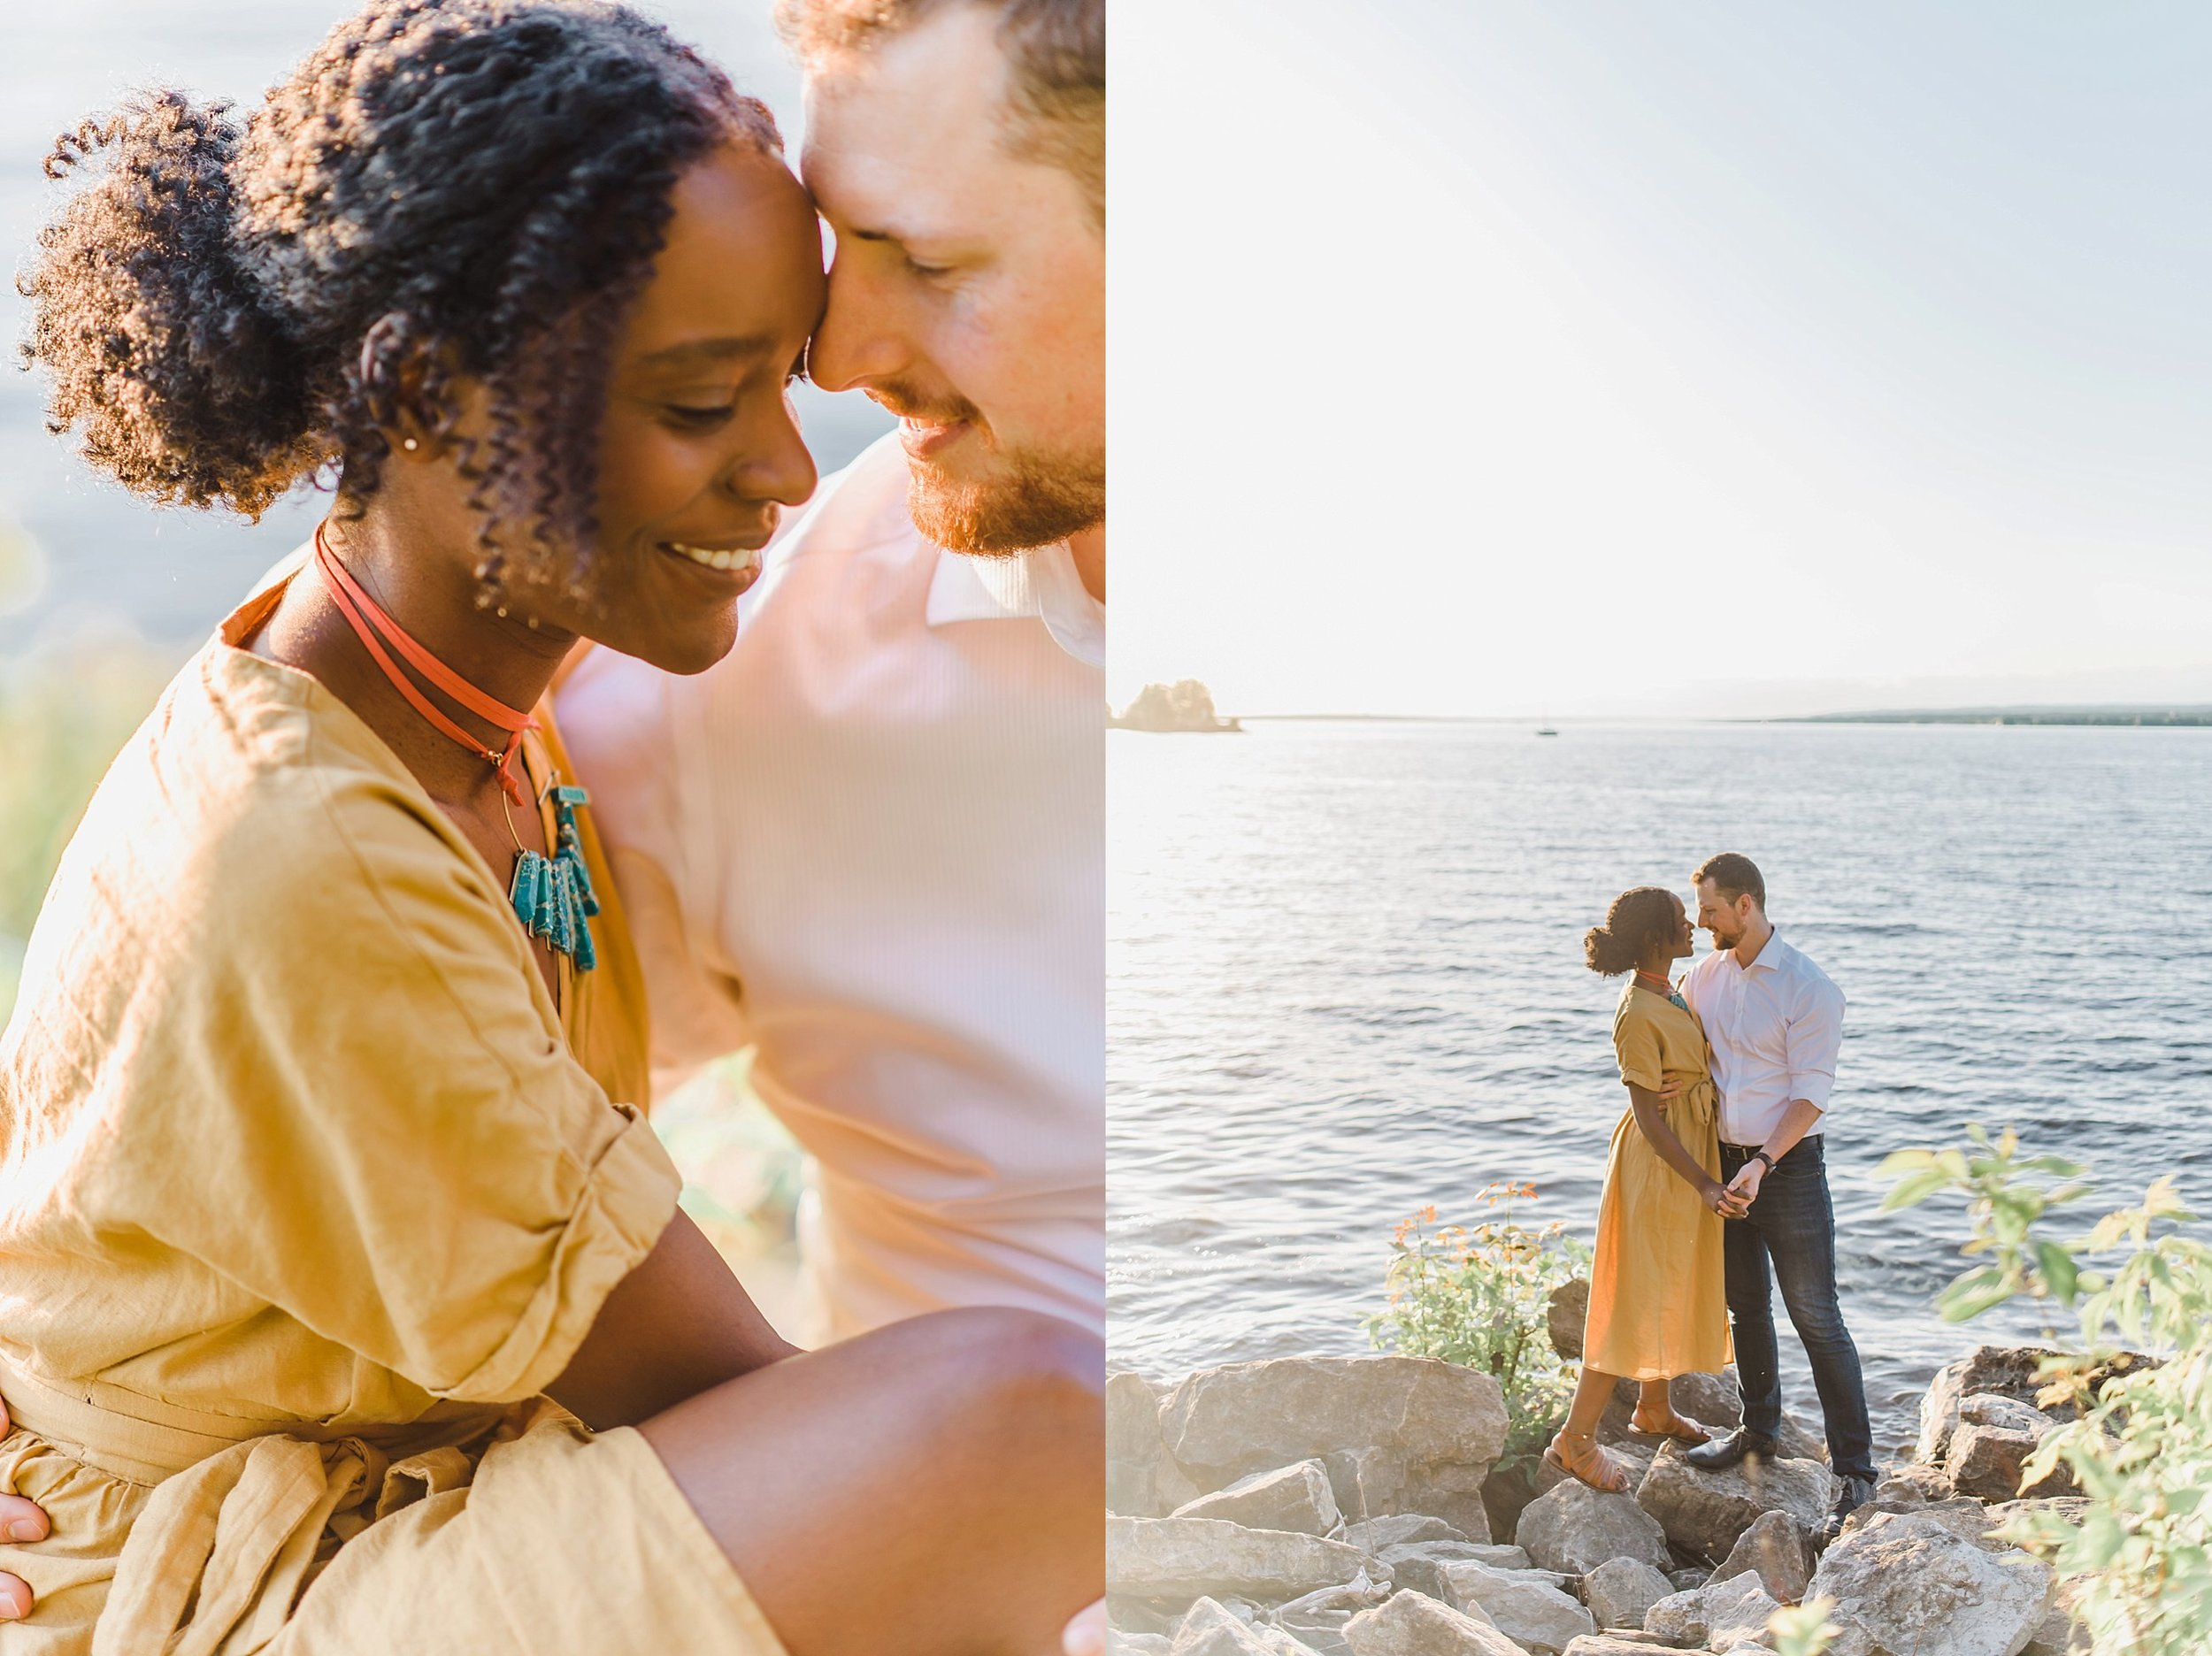 light airy indie fine art ottawa wedding photographer | Ali and Batoul Photography_0166.jpg